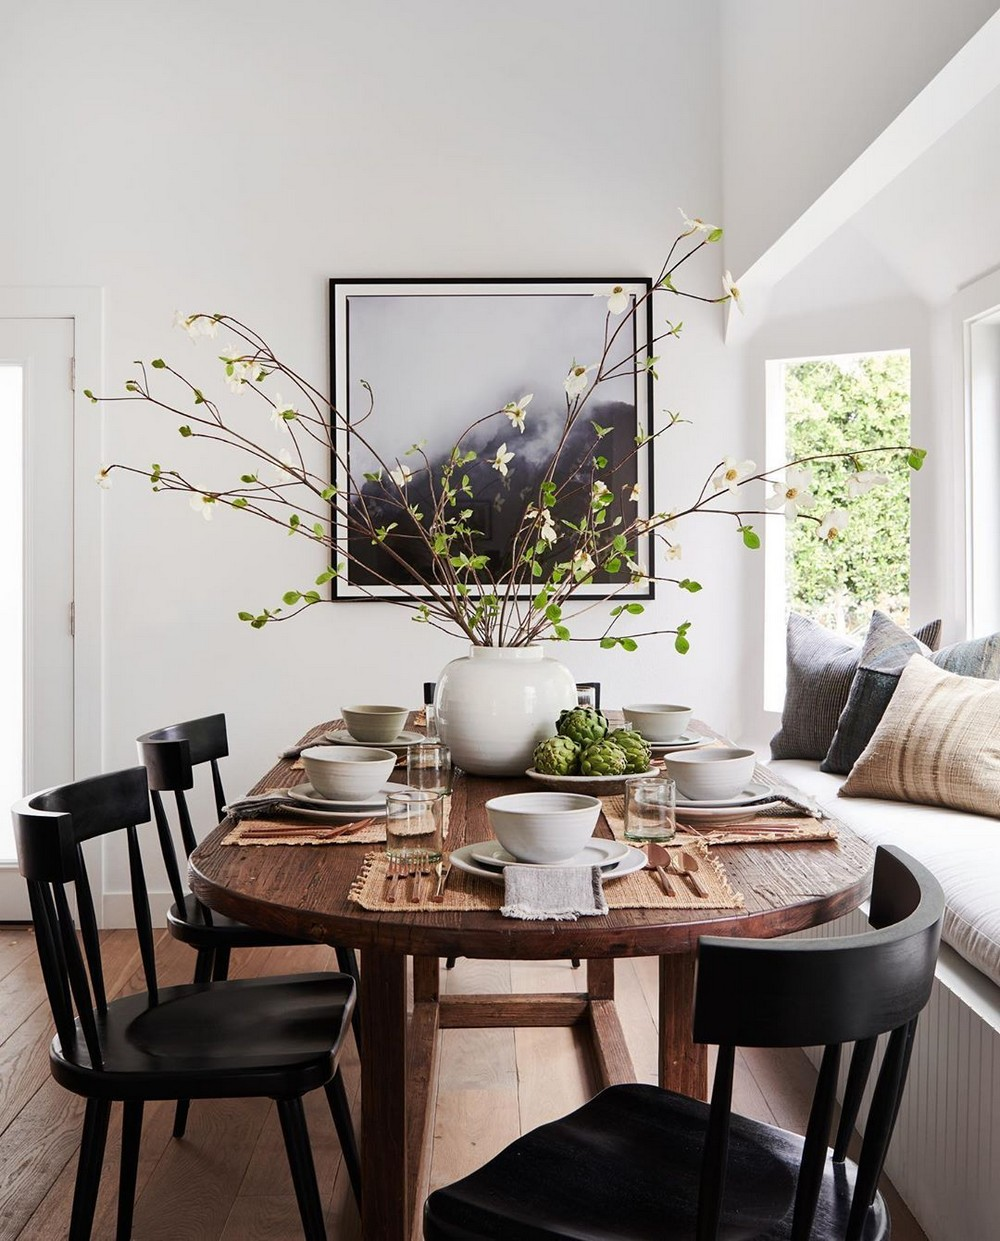 A Laid Back California Aesthetic: Dining Rooms by Amber Interiors amber interiors A Laid Back California Aesthetic: Dining Rooms by Amber Interiors 1 amber interiors